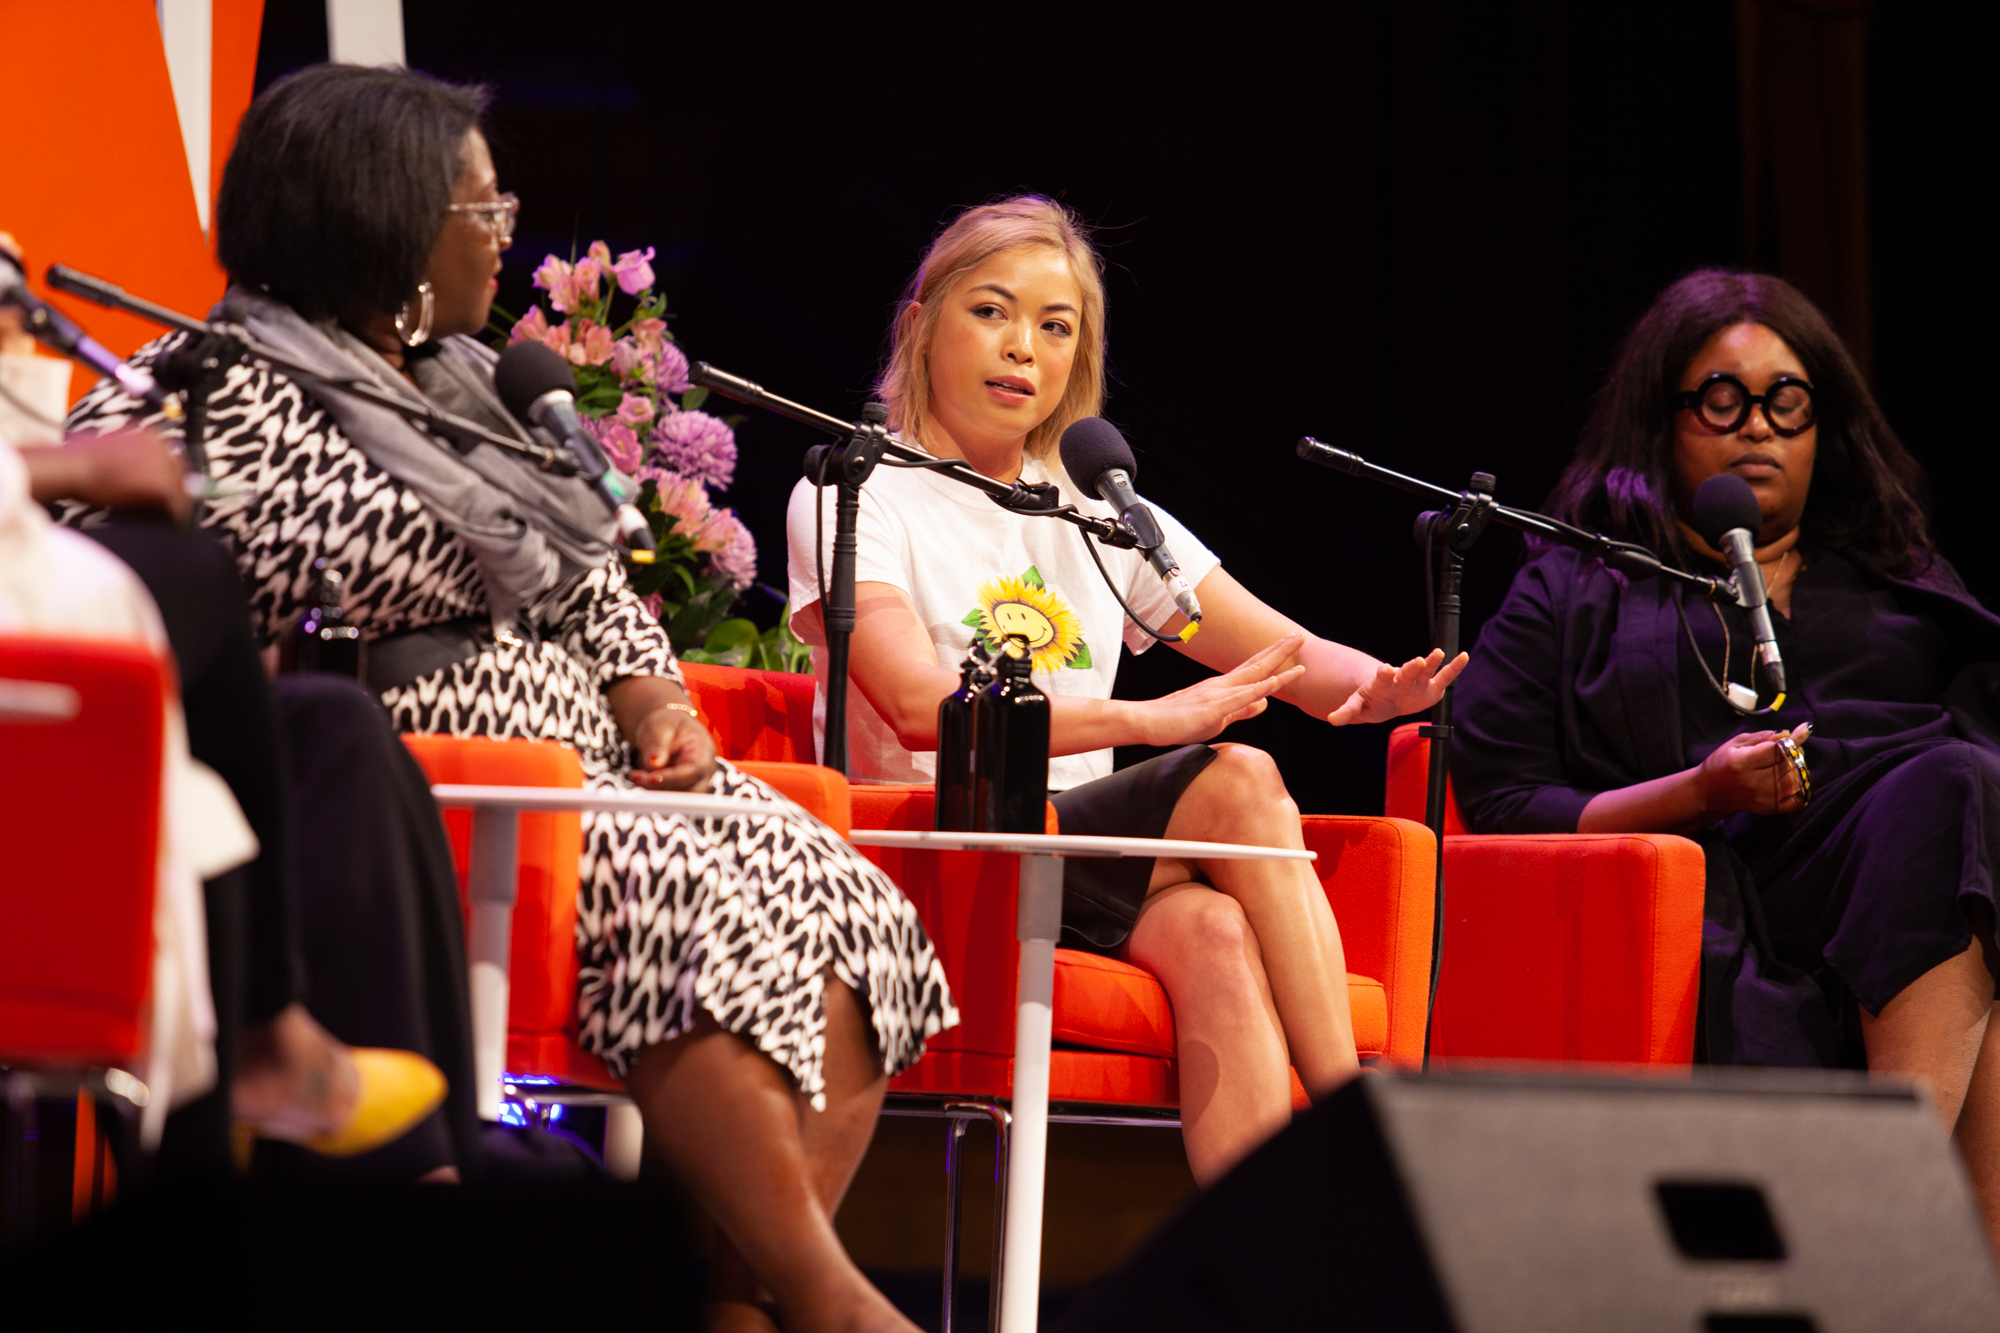 Photo of Tressie McMillan Cottom, Jia Tolentin and Aminatou Sow on stage